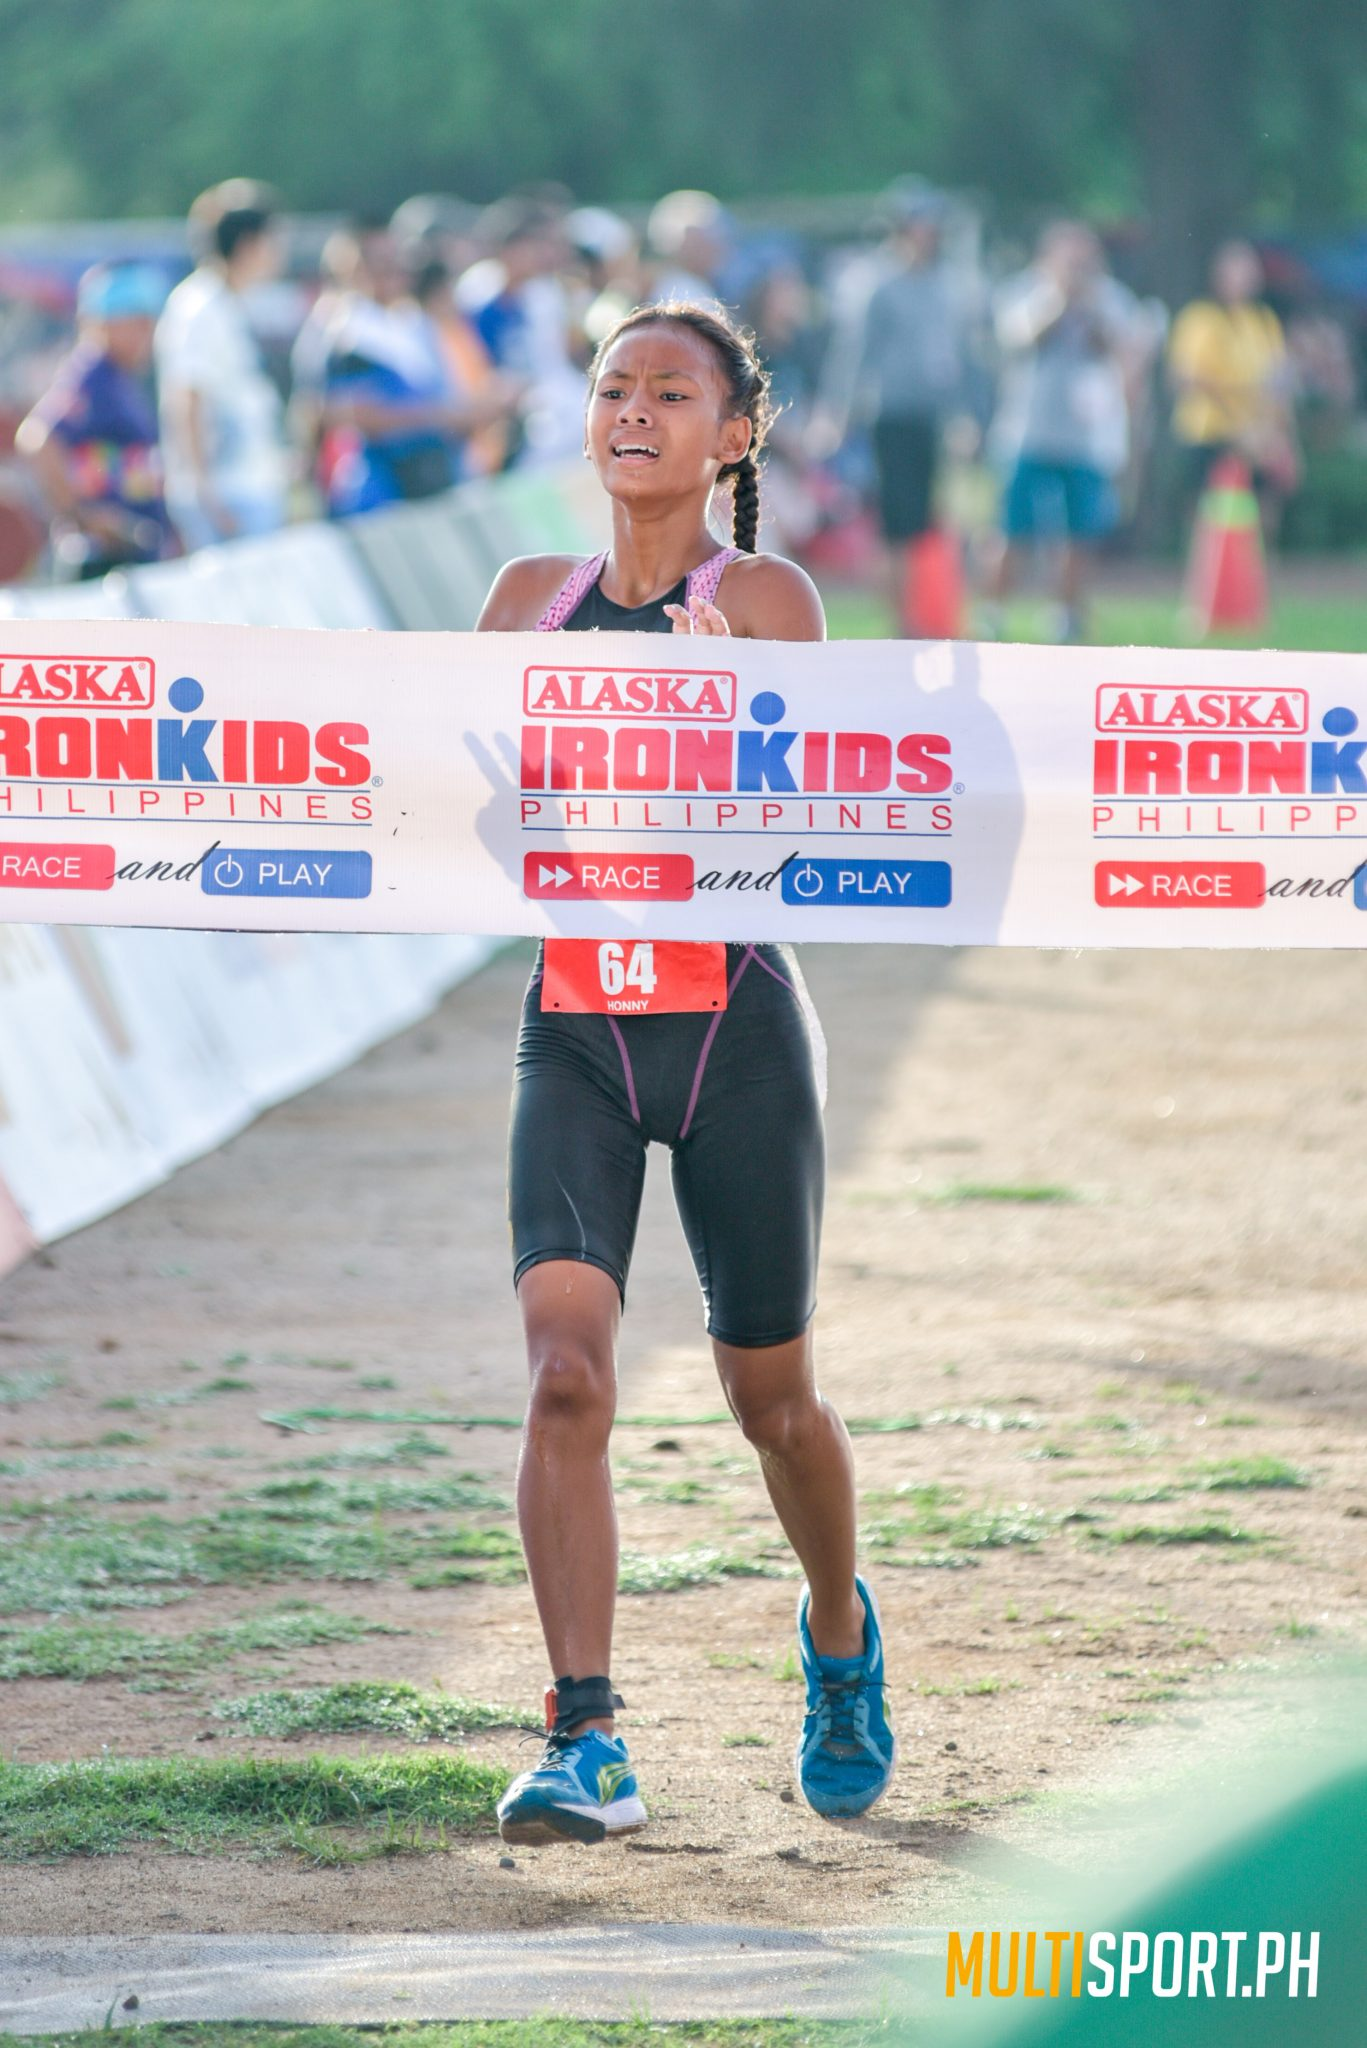 Gallery: Alaska Iron Kids Swim-Run 2018